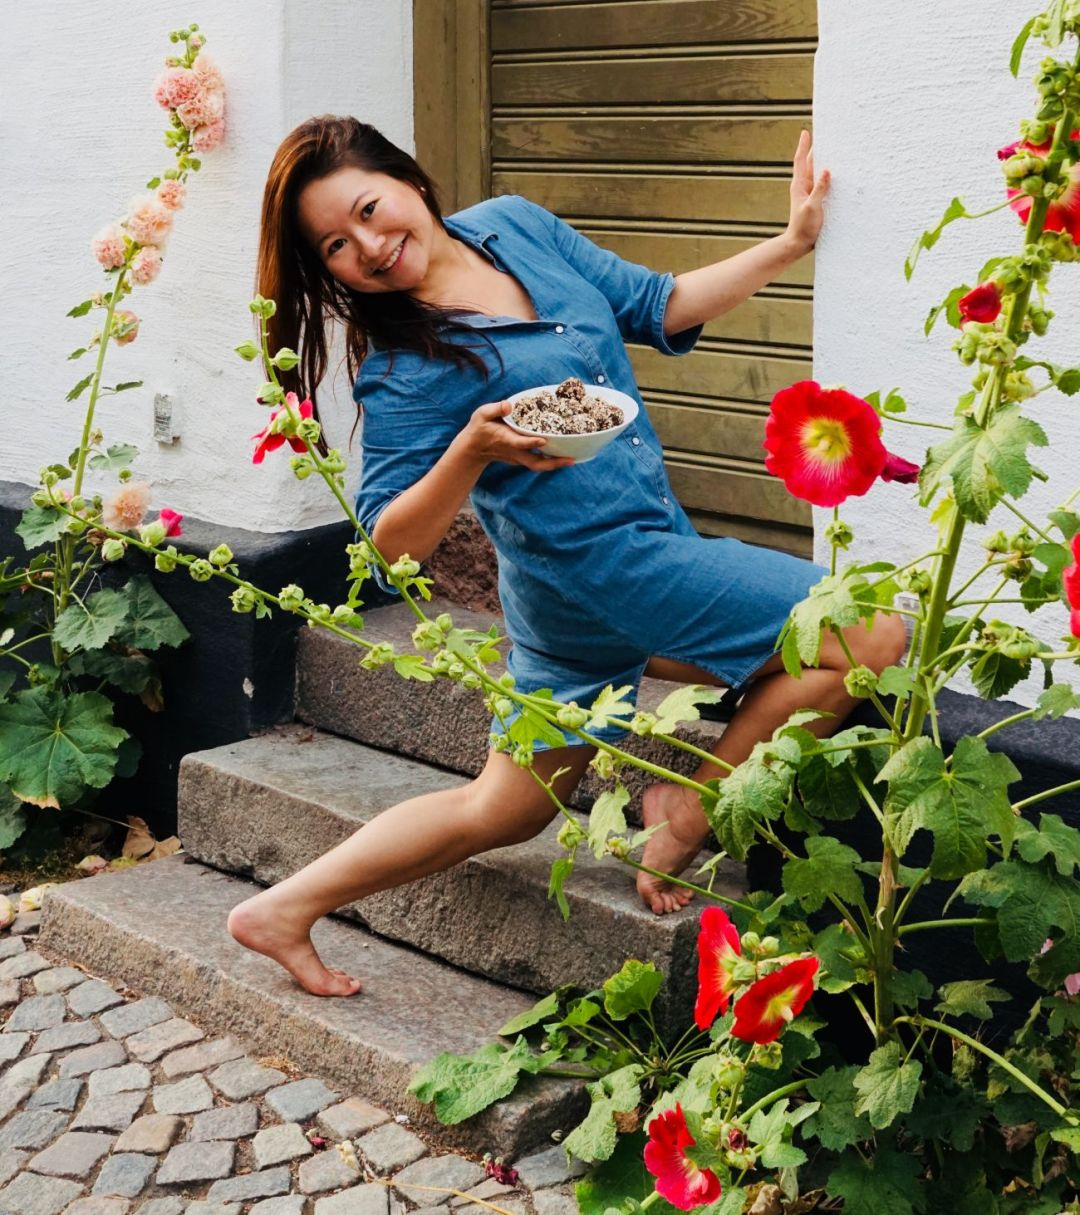 Alaine Handa, who has just written a new cookbook about Swedish chokladboller